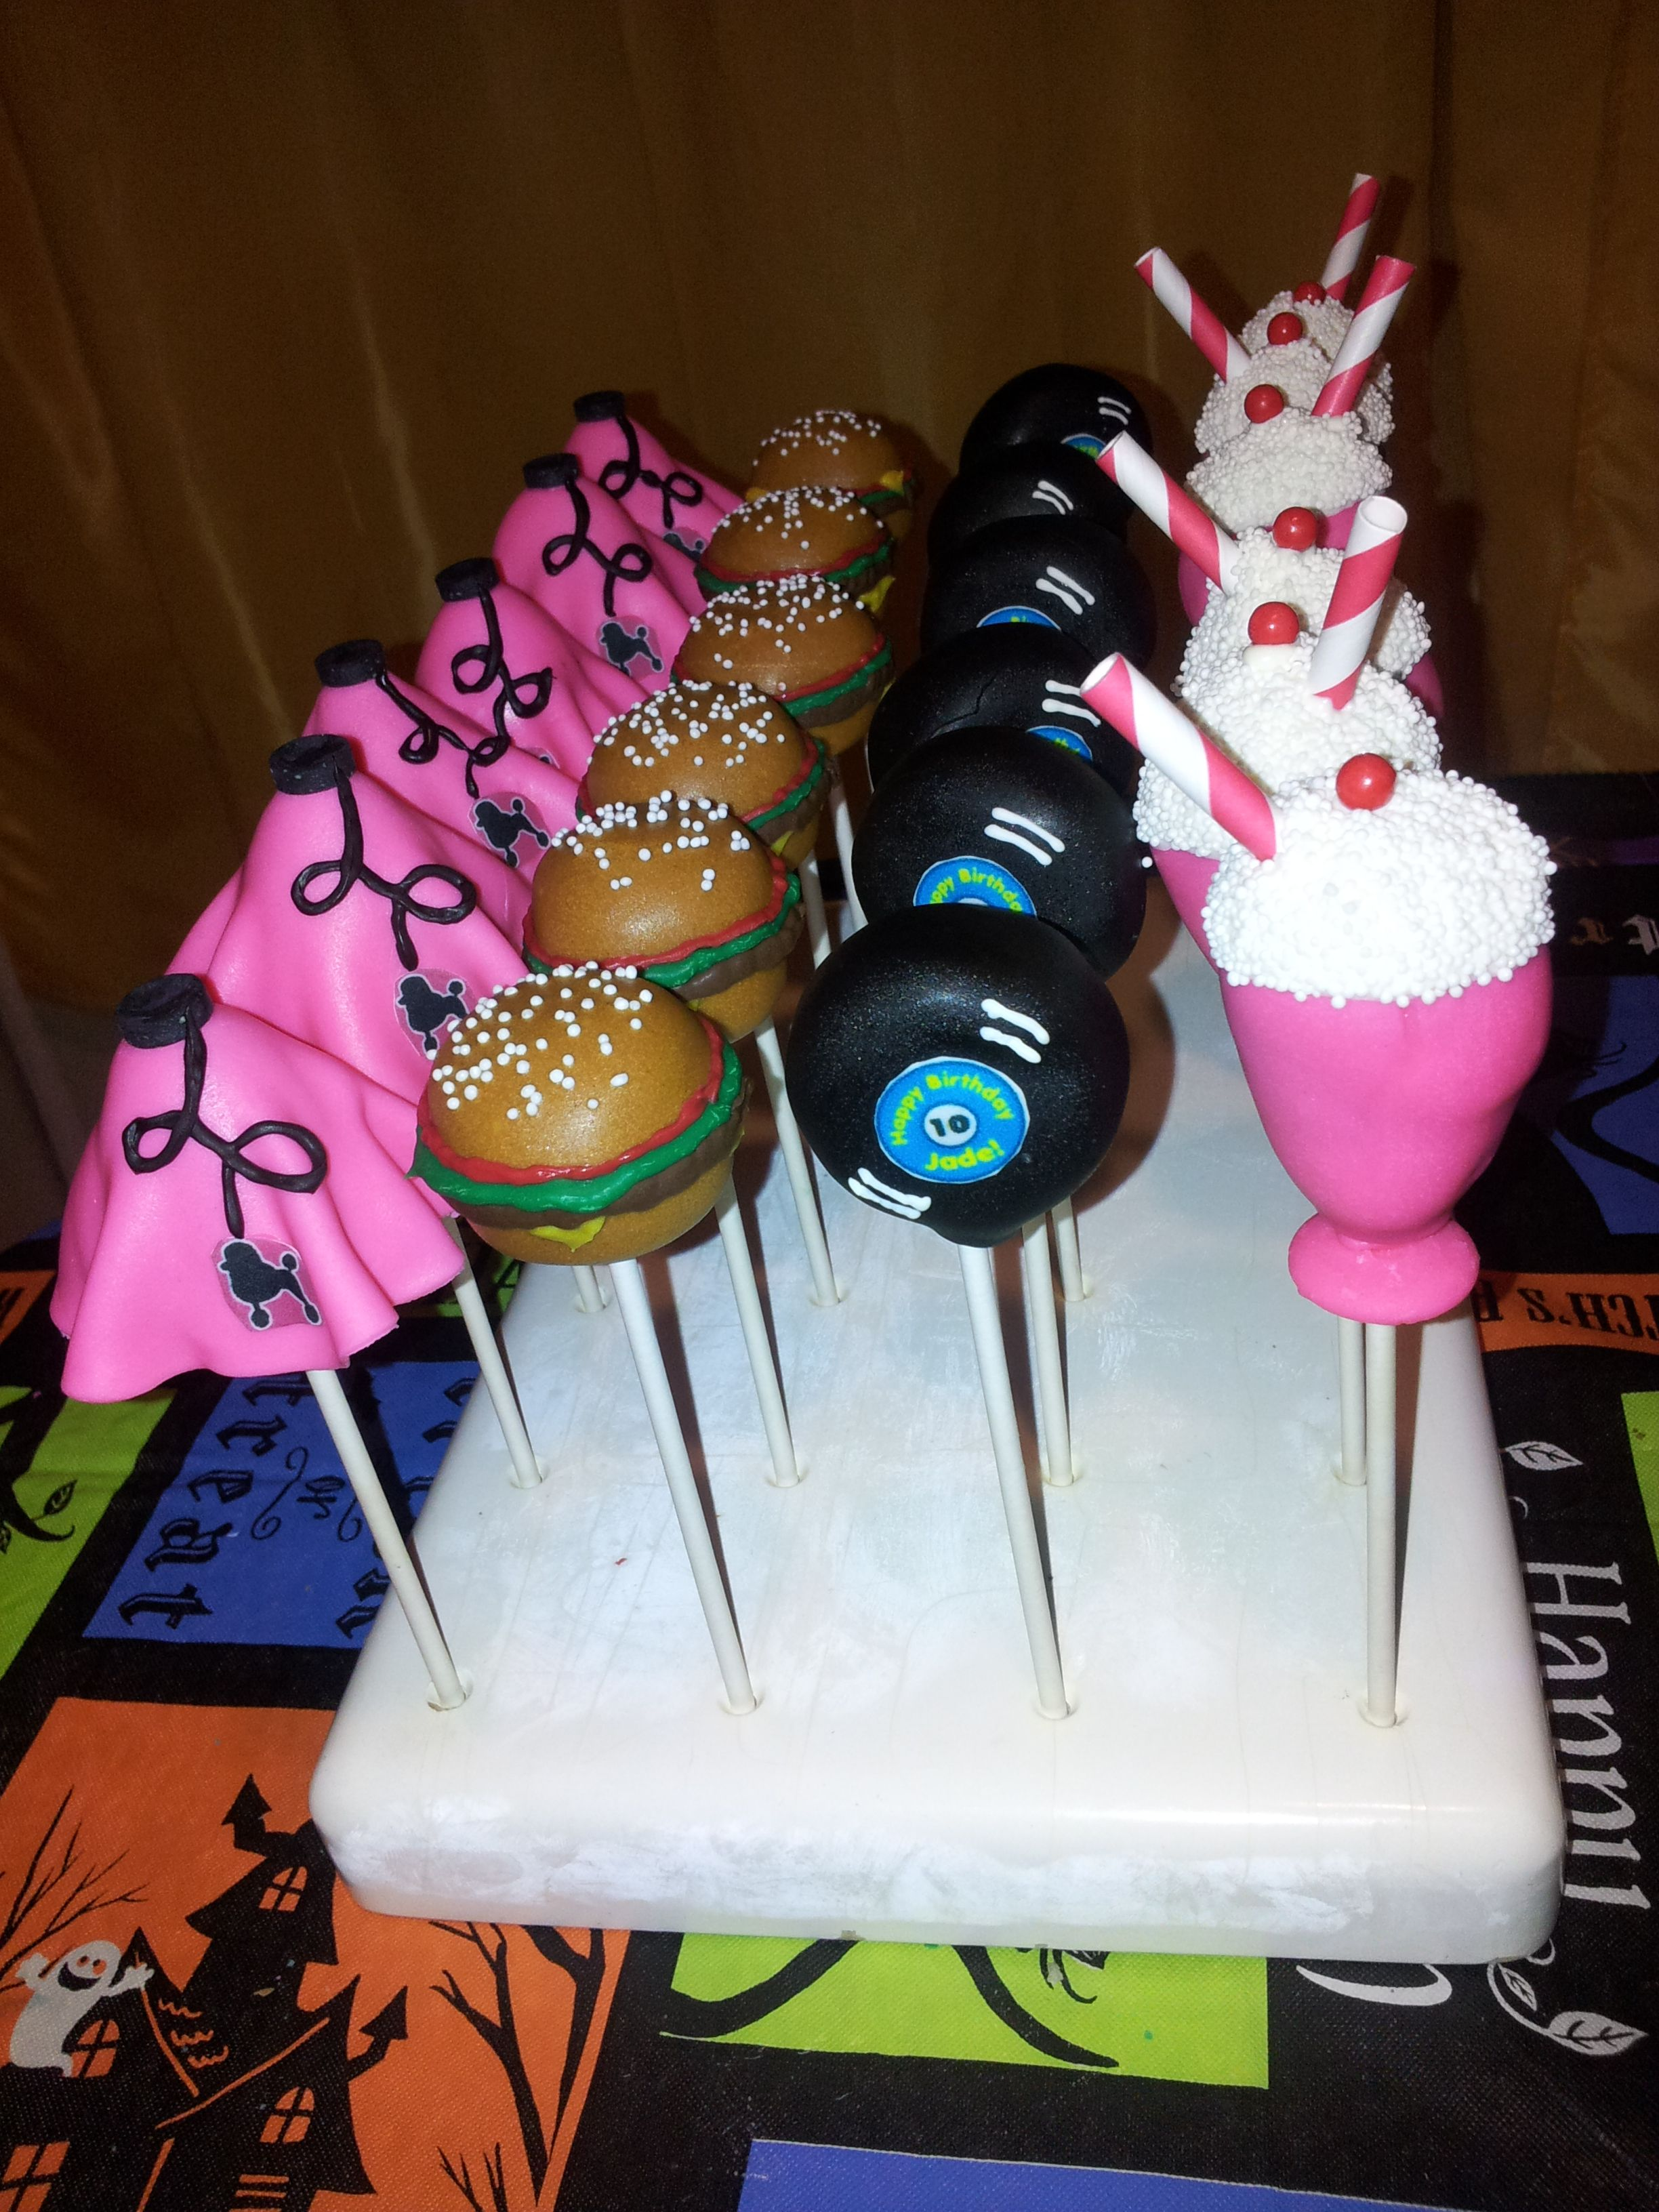 50 S Themed Cake Pops